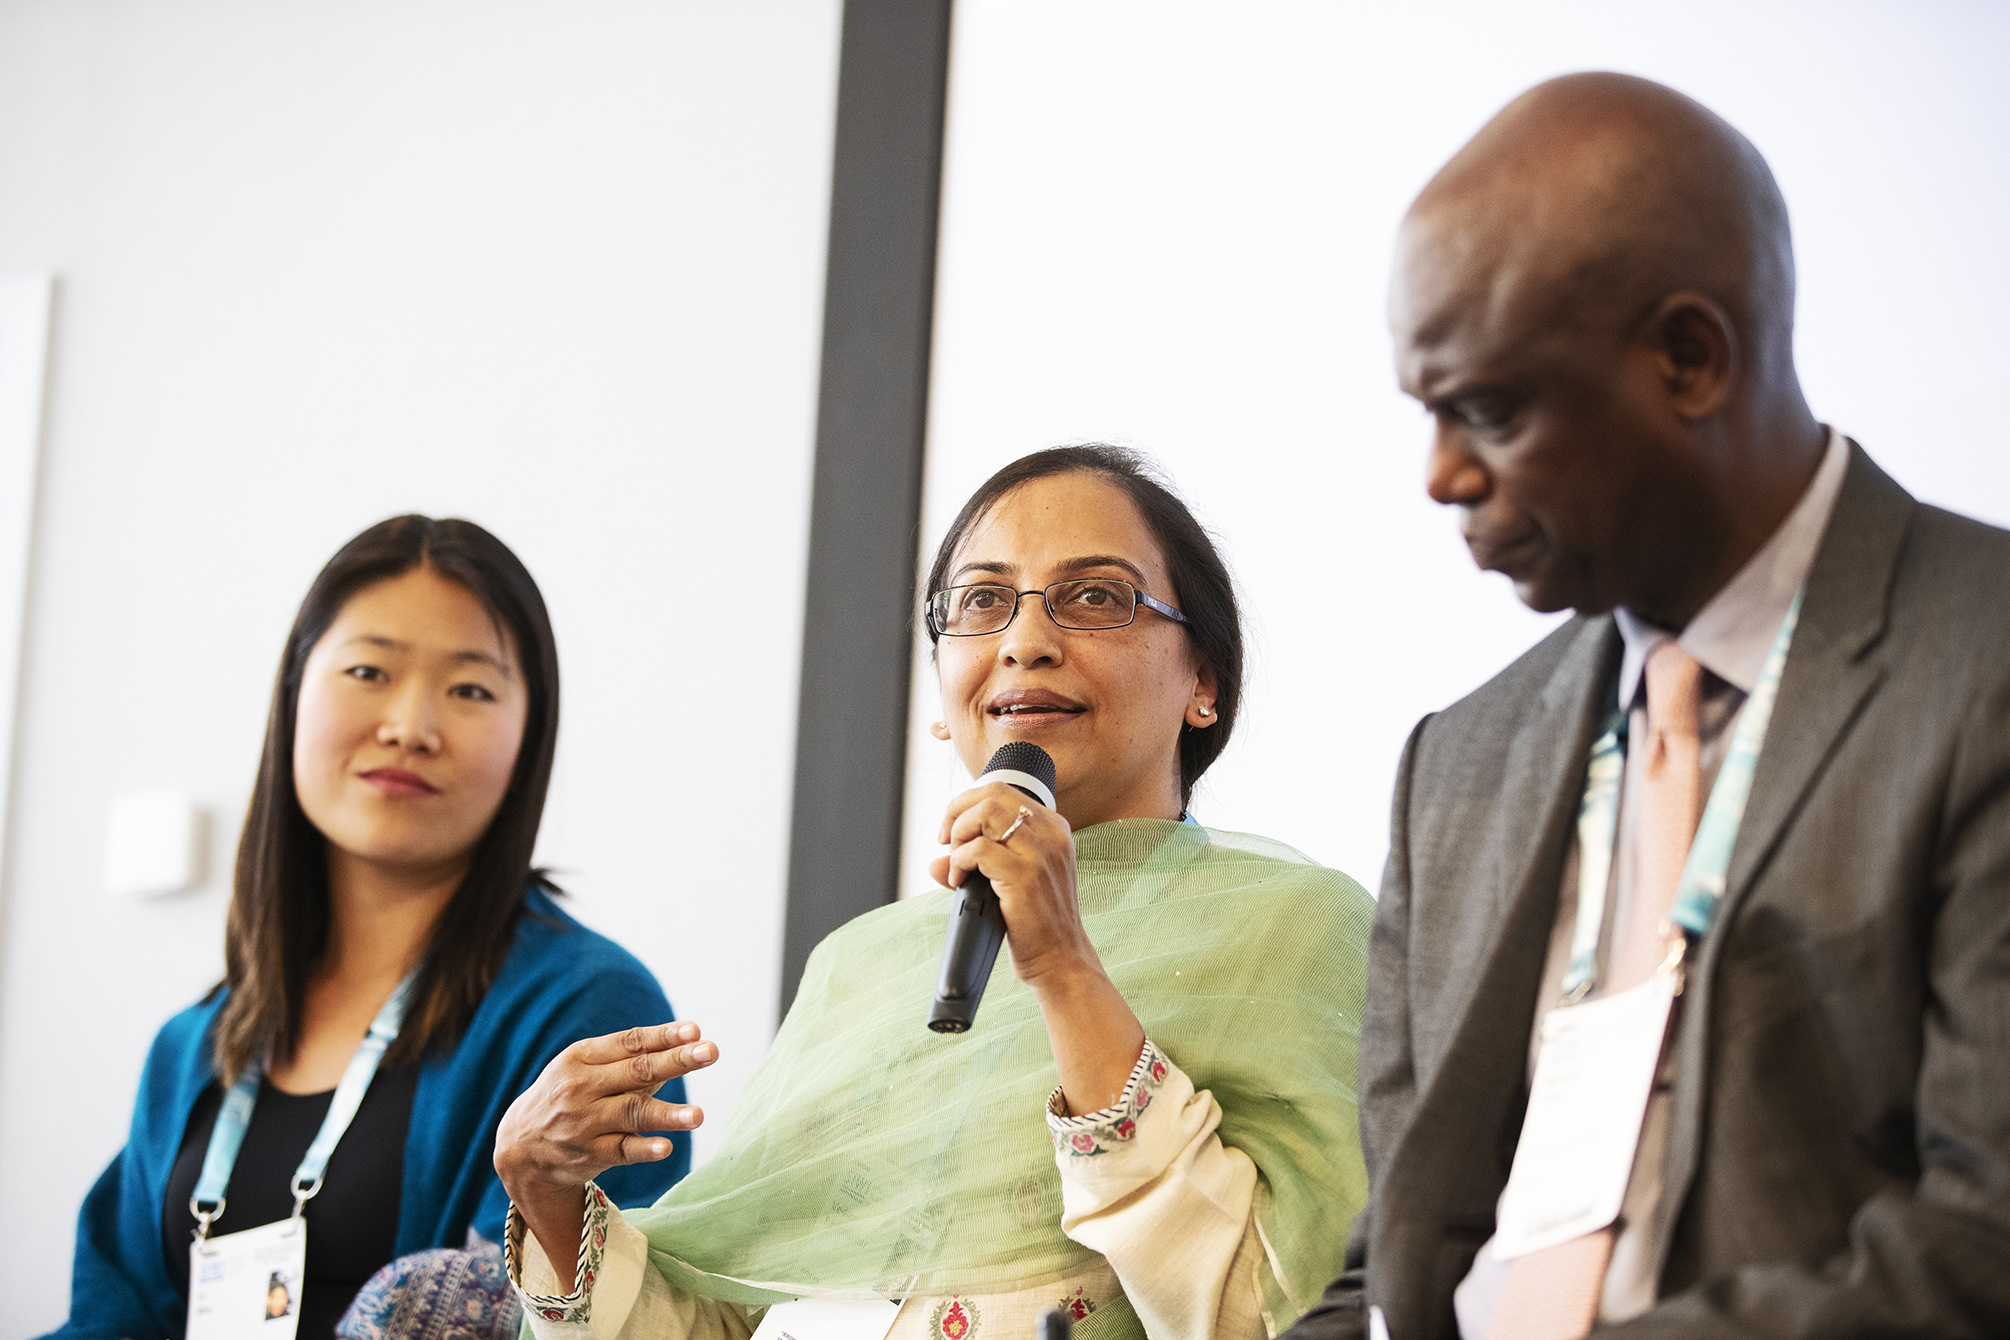 iDE-P_2018 World Water Week, panel 2_Photo credit to Water.org